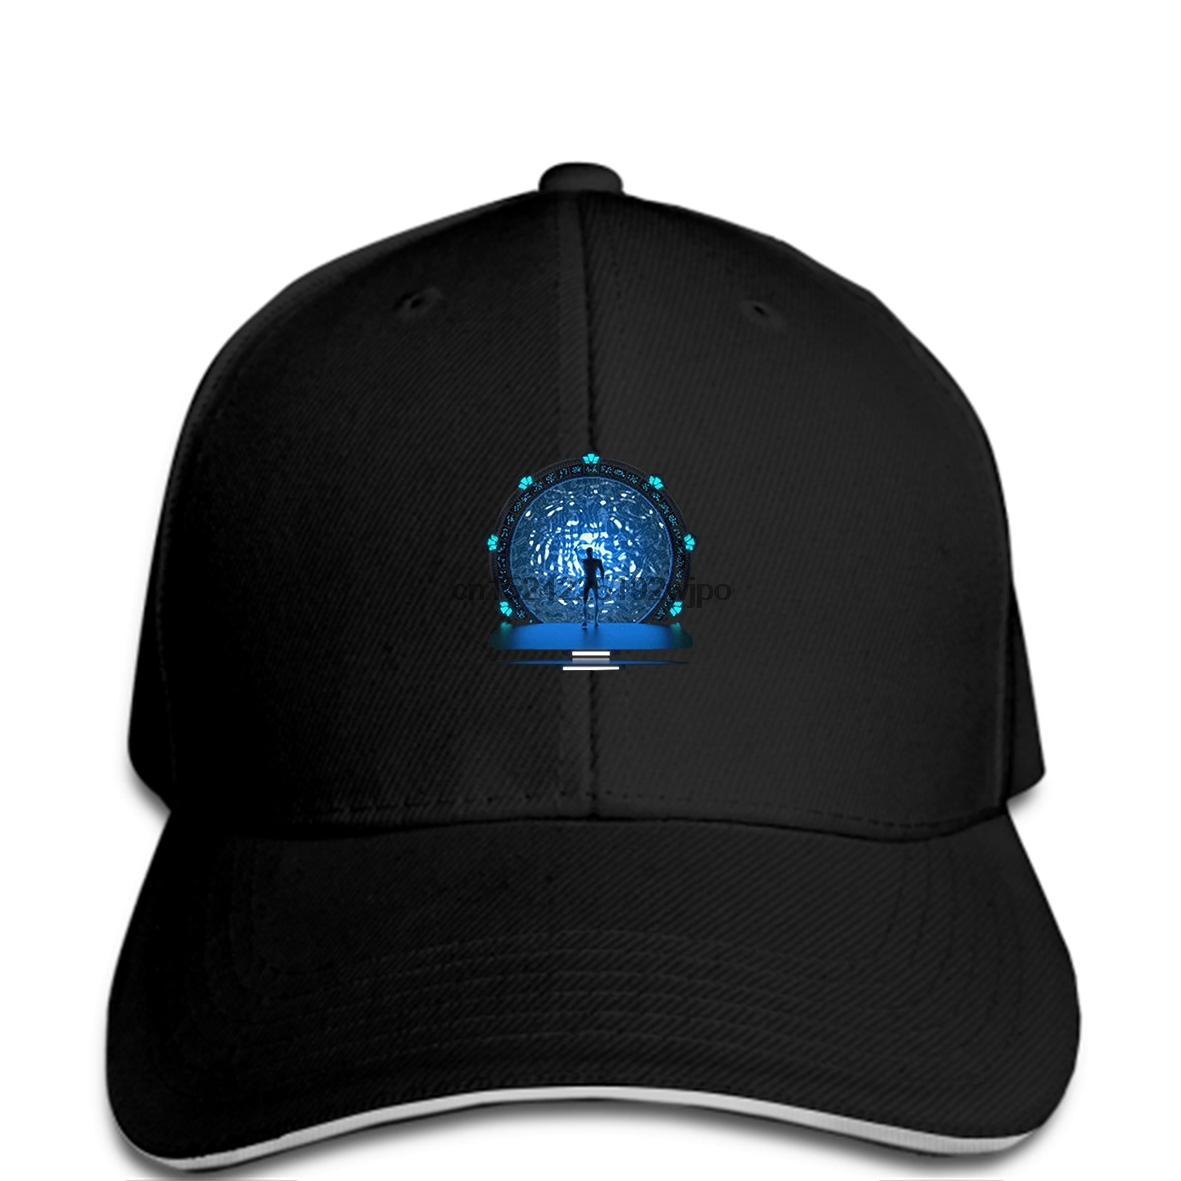 Hot Summer Men S Baseball cap Fashion New Stargate Portal Movie Sg 1  Atlantis Tv Serie Stargate Baseball cap ad406dca6e2